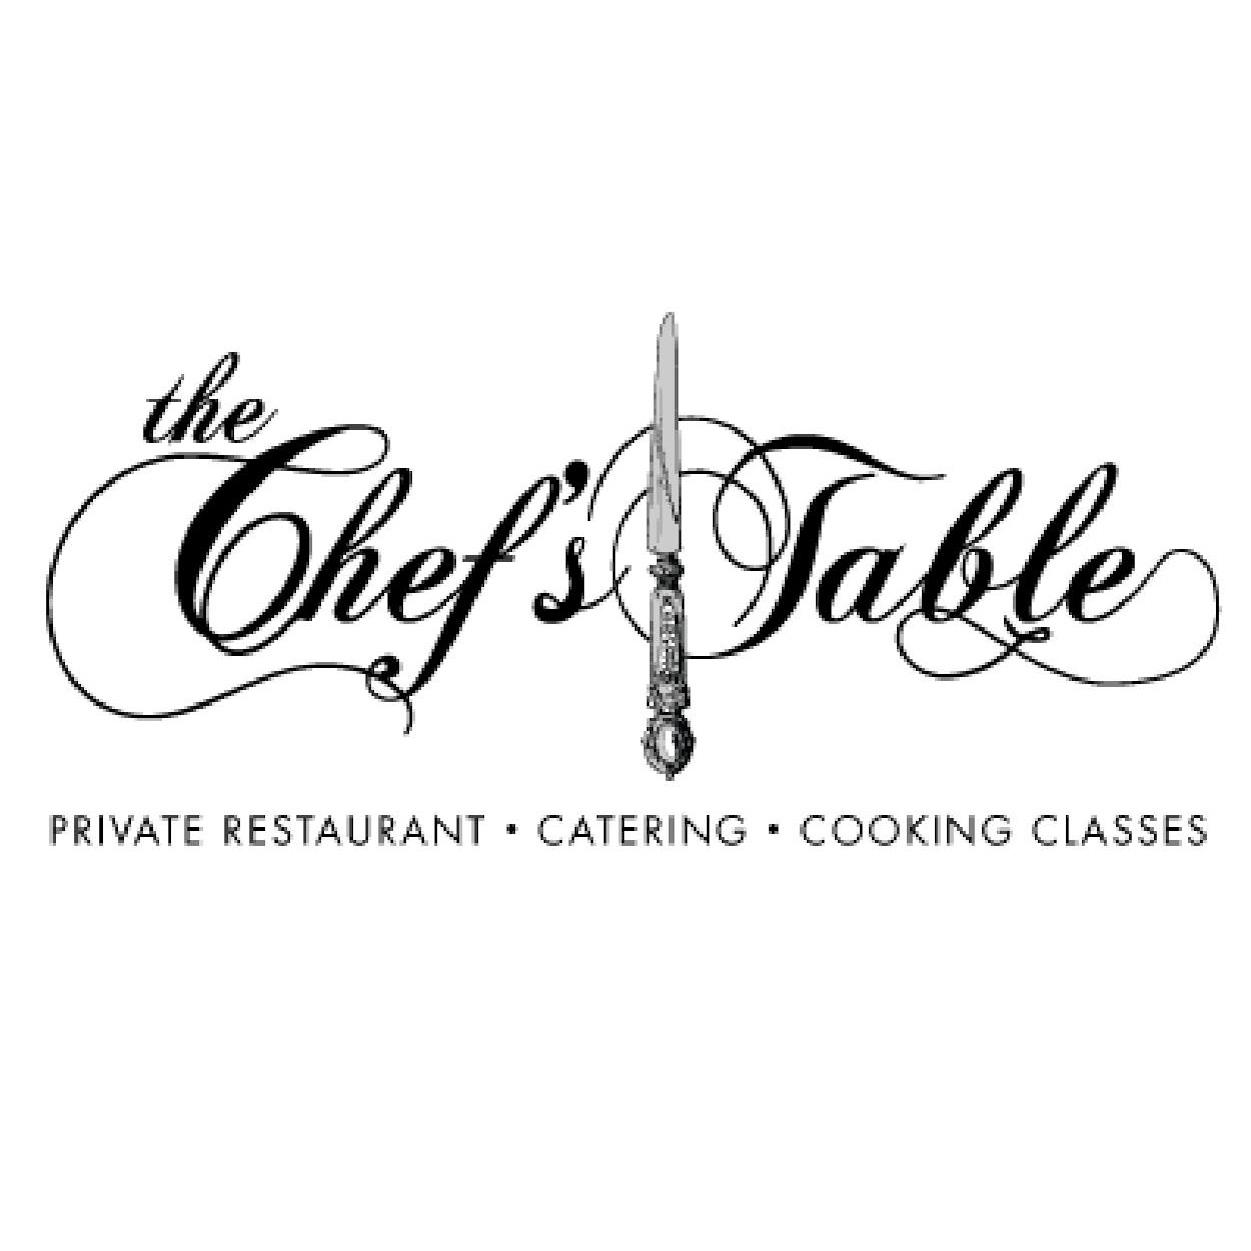 The Chef's Table logo